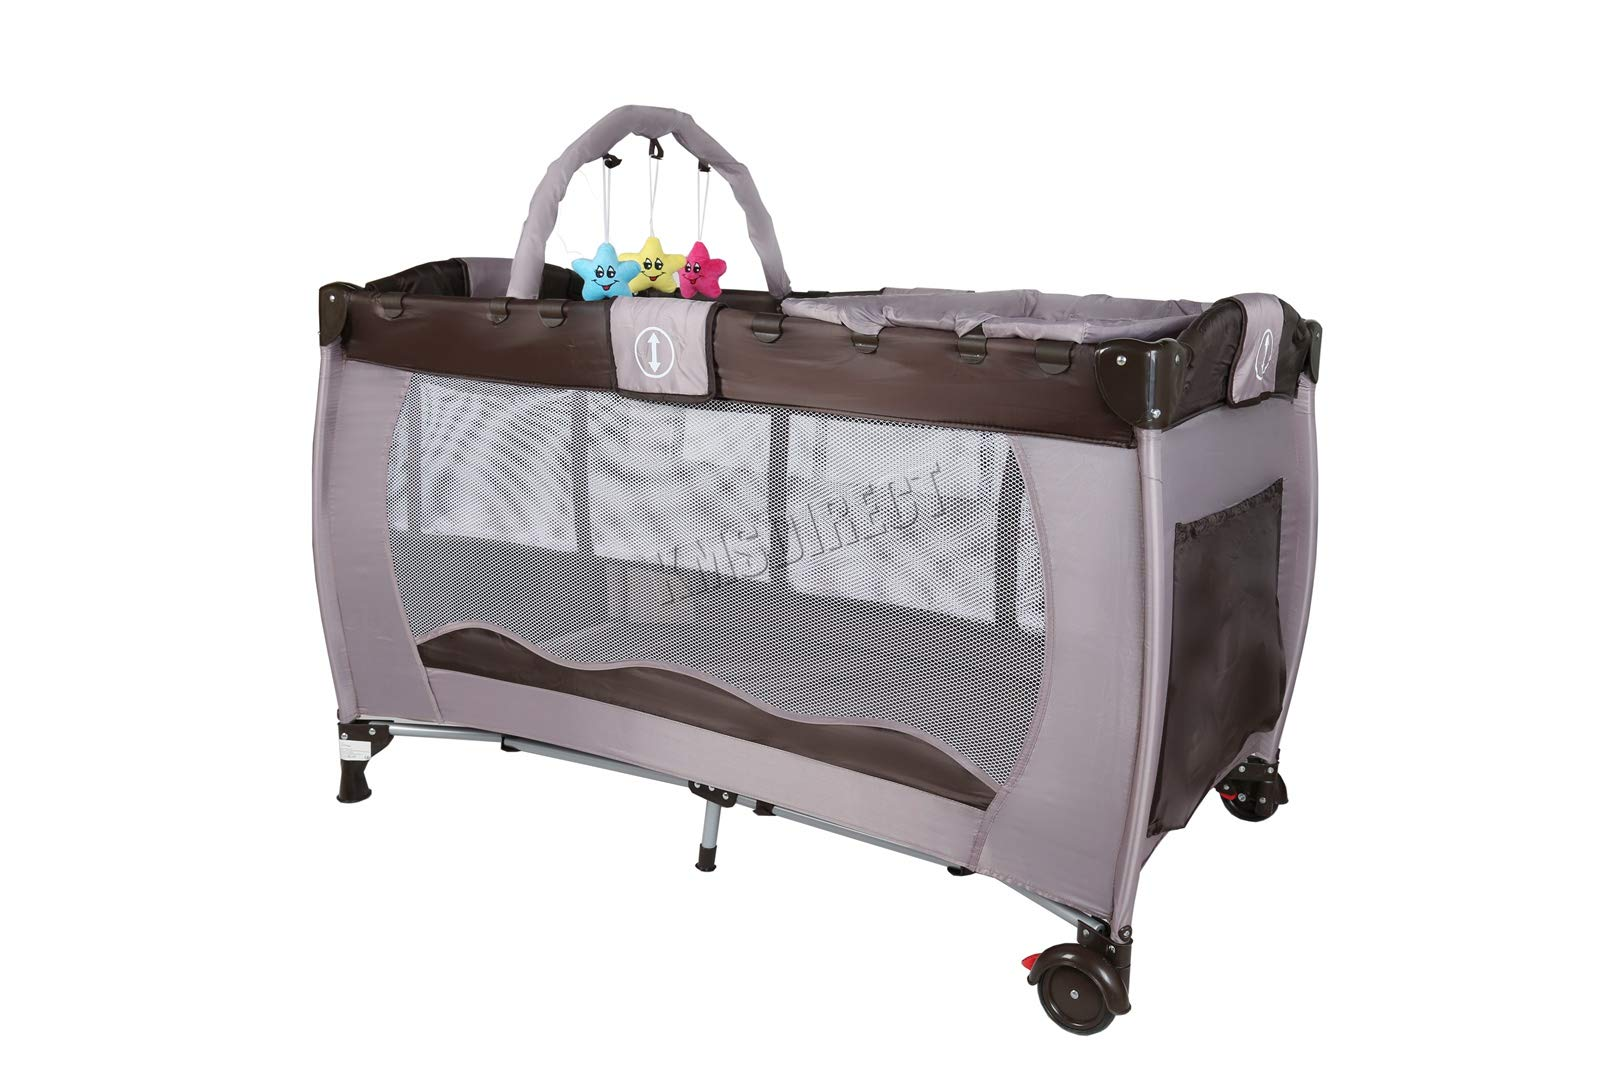 FoxHunter Portable Baby Cot Sleeping Bed Kids Infant Playpen Bassinet Child Play Pen with Entryway Travel BCB01 Coffee FoxHunter Travel cot easy to assemble and disassemble thanks to folding mechanism; igh quality and light weight; Fast and easy set-up, safe material and easy to clean; 2